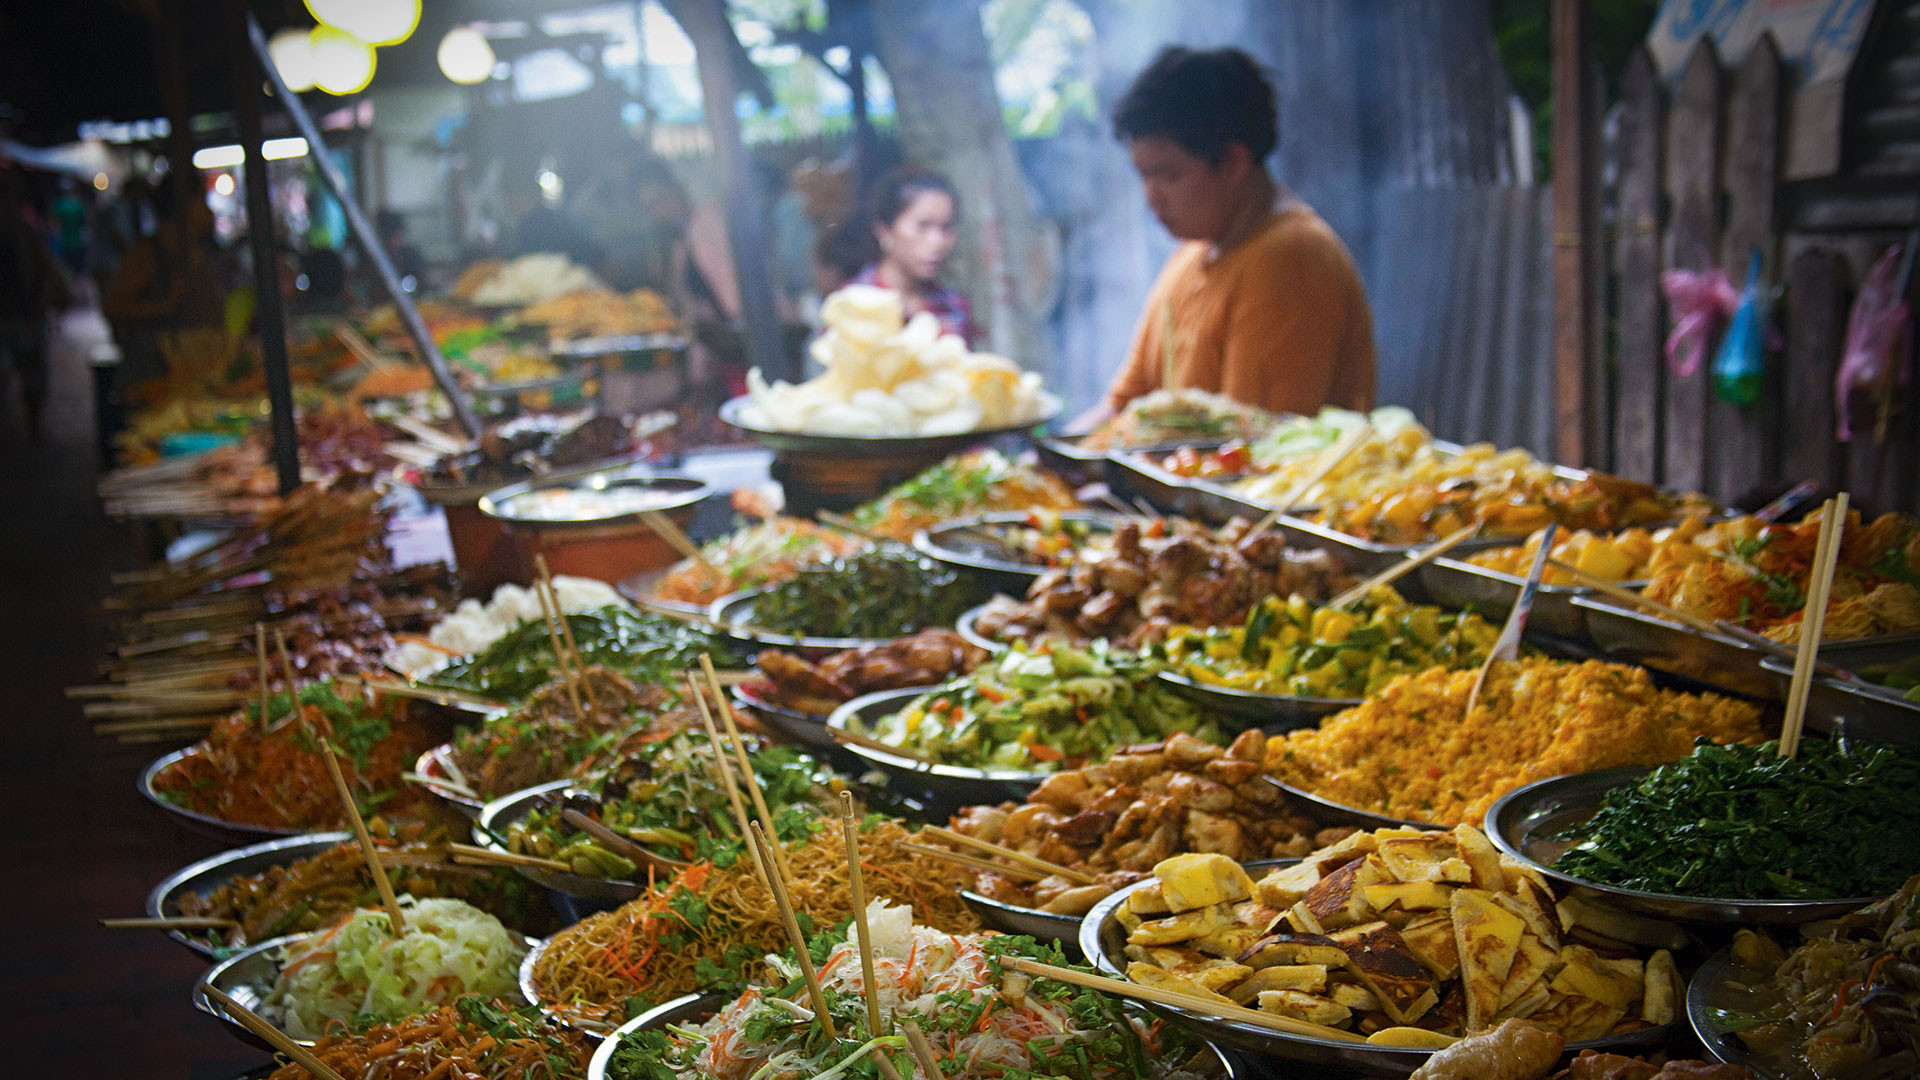 Street food in Bangkok, Thailand. Photograph by Alexander Scheible/Alamy